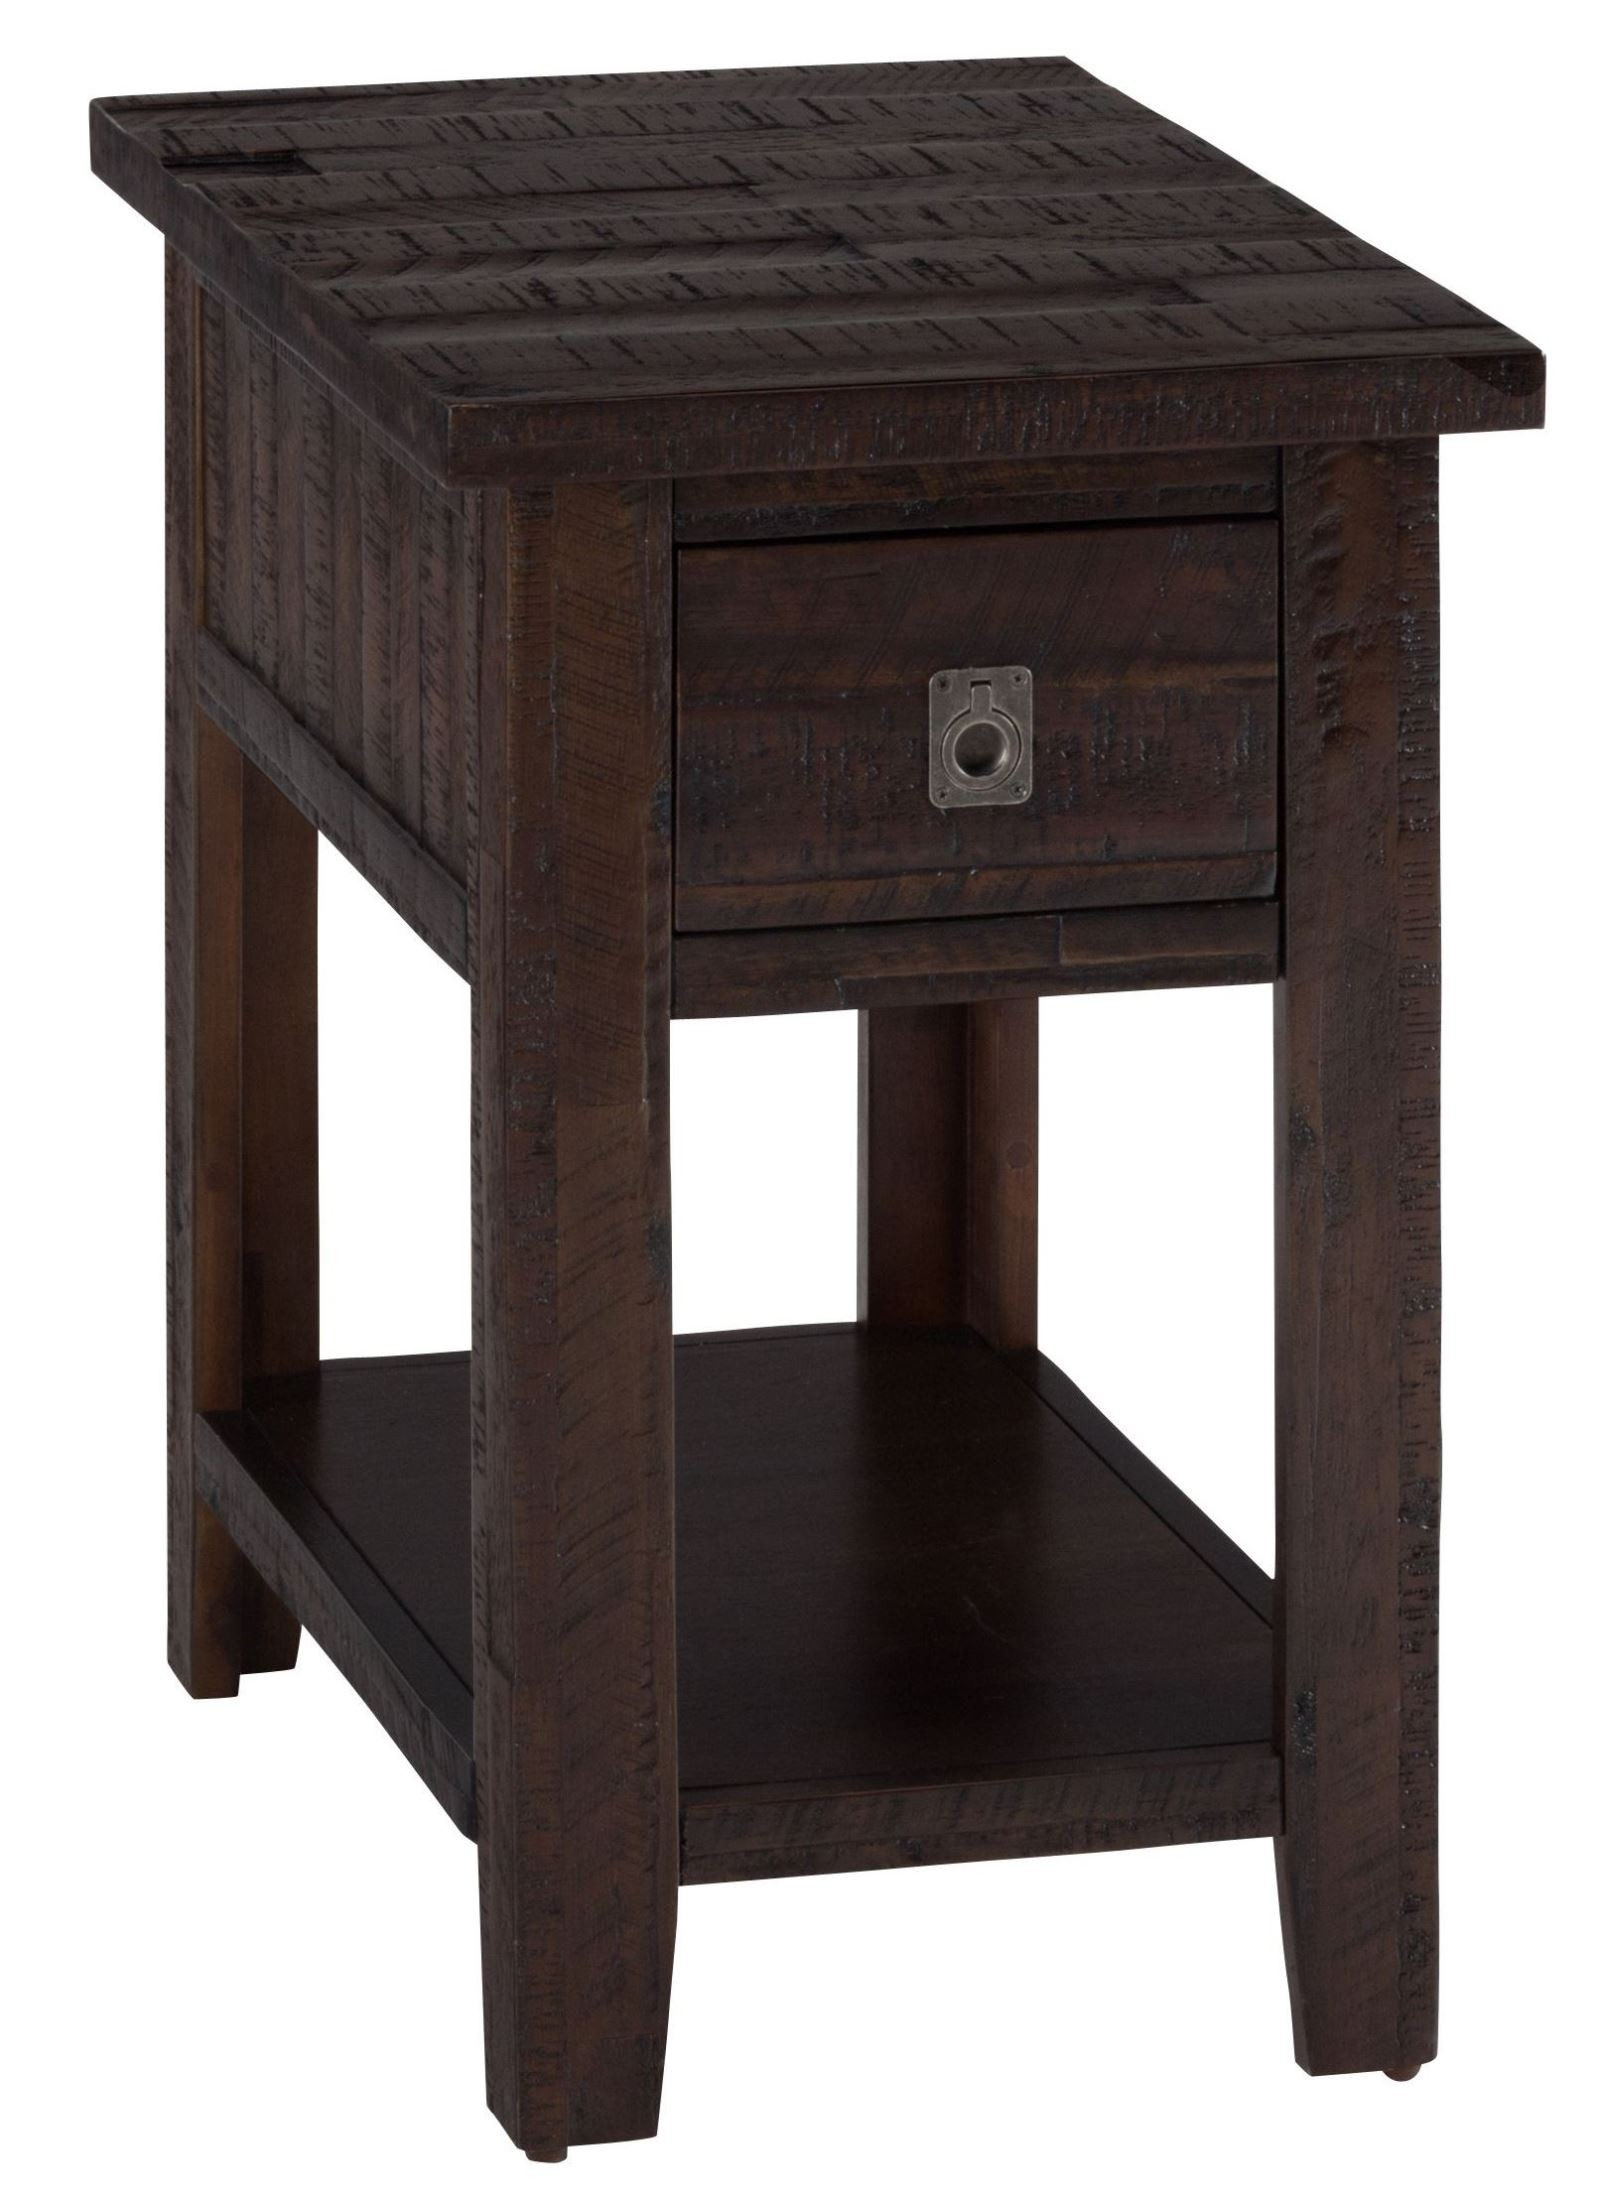 Kona gove rustic chocolate chairside table from jofran for Chairside table